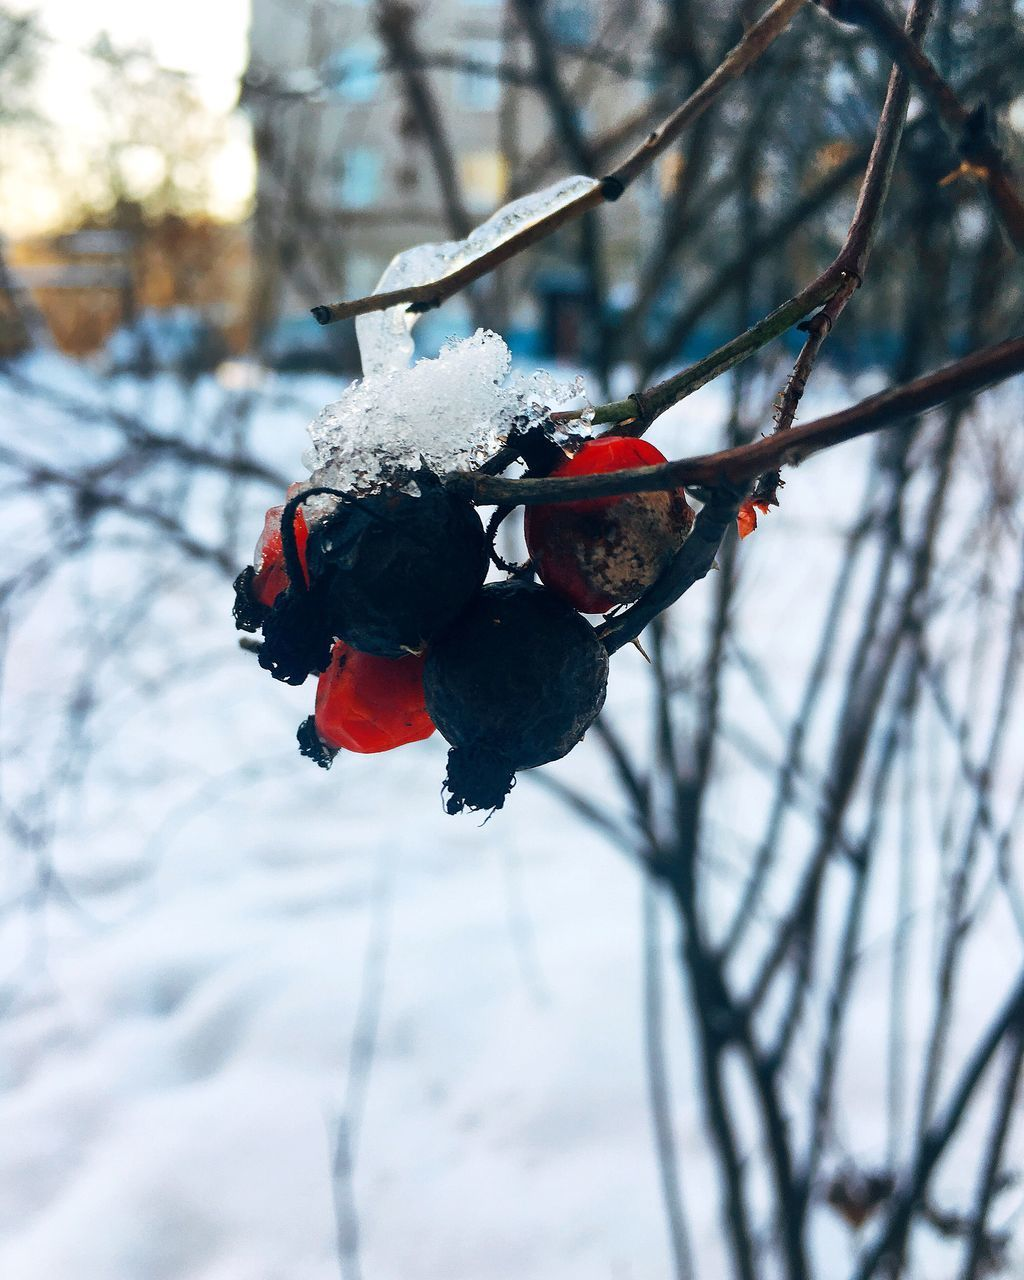 winter, snow, cold temperature, tree, plant, focus on foreground, nature, close-up, branch, no people, frozen, day, fruit, berry fruit, healthy eating, food, food and drink, beauty in nature, twig, outdoors